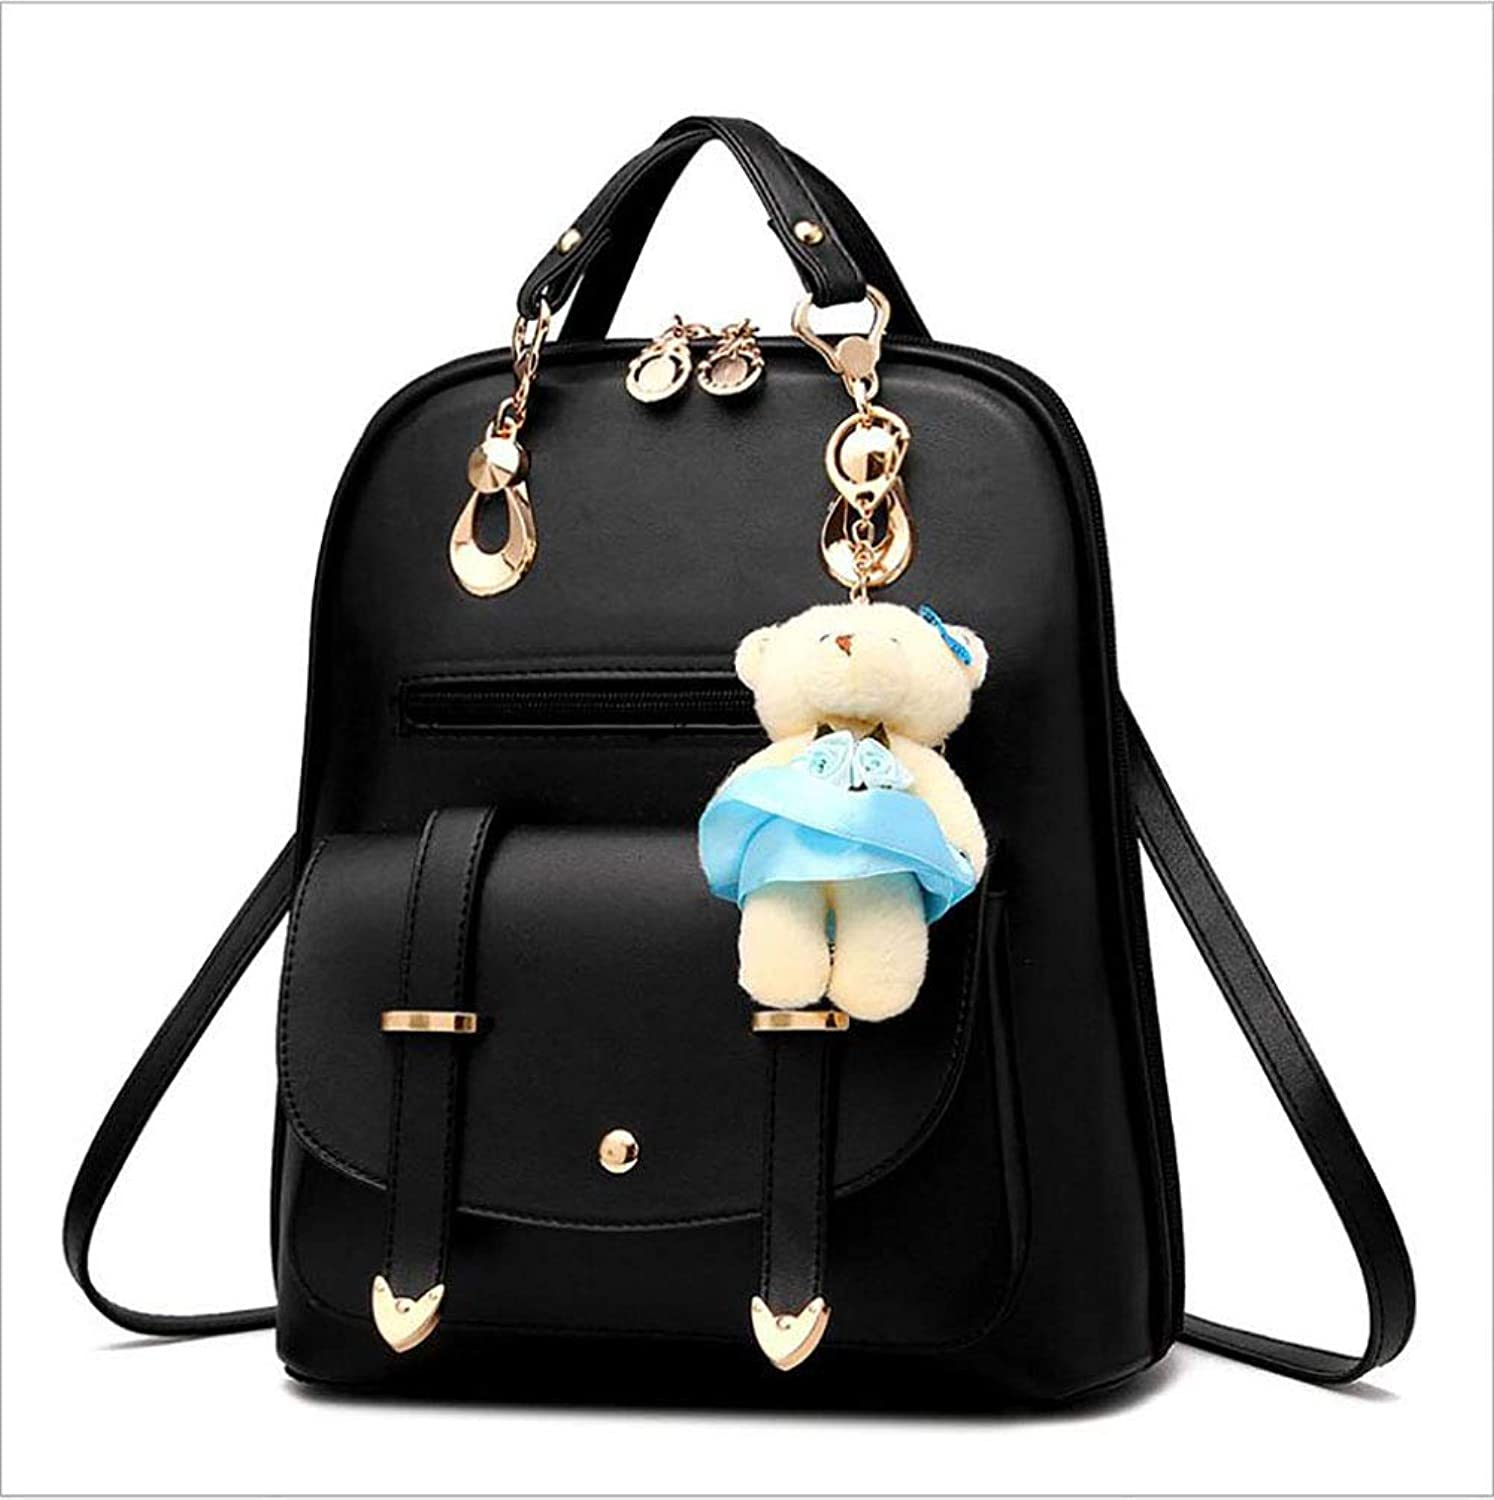 Women's Pu Fashion Backpack Bag Ladies Personality Wild Travel Large Capacity Shoulder Bag Tourism Get Together Shopping (color   A)